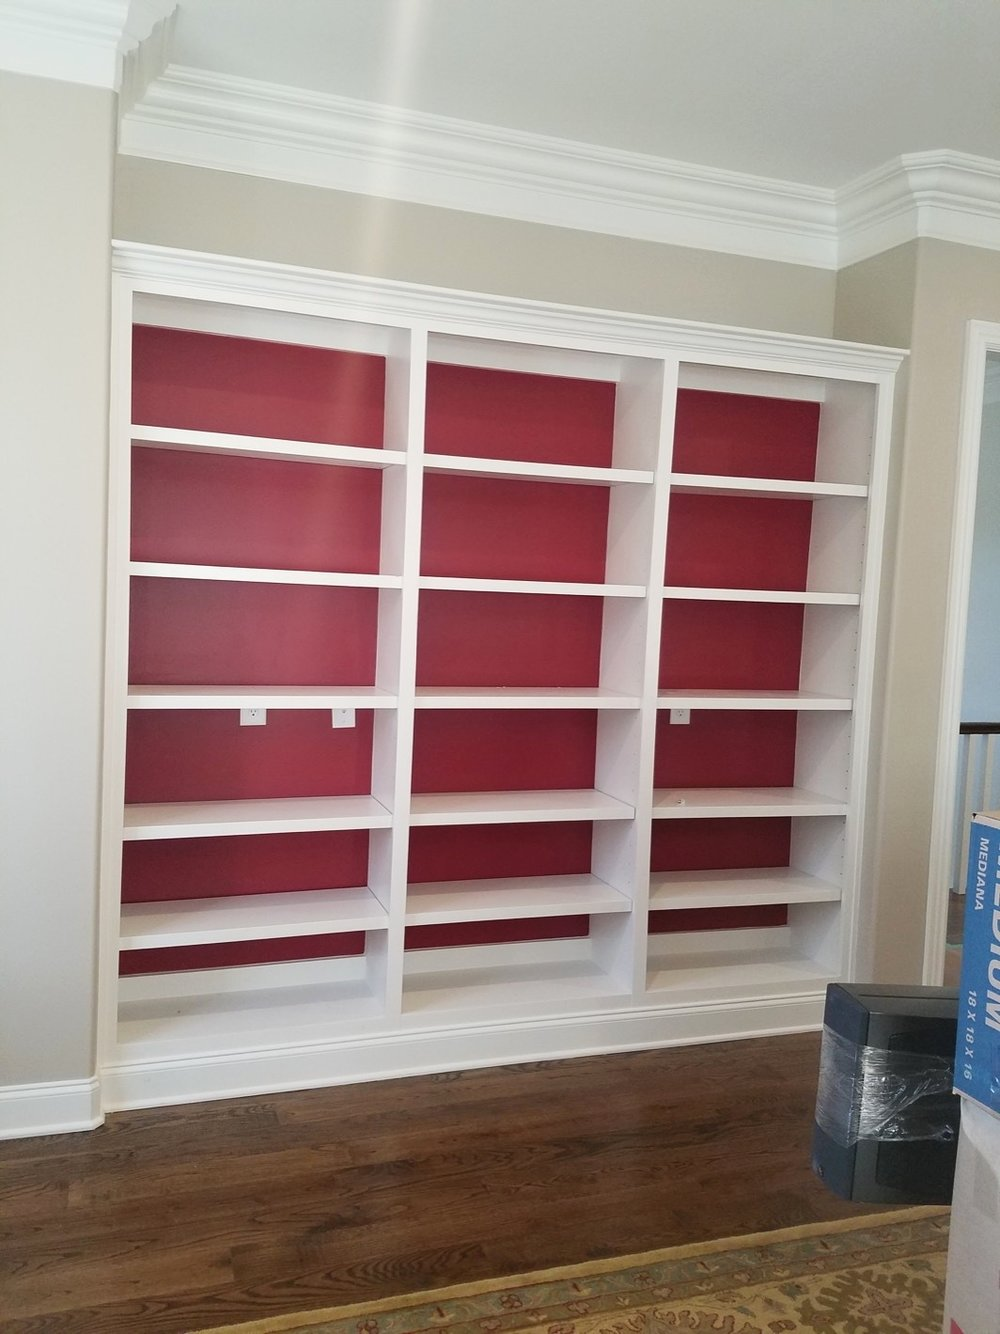 White shelves with red wall - Residential painting by Nash Painting Nashville TN